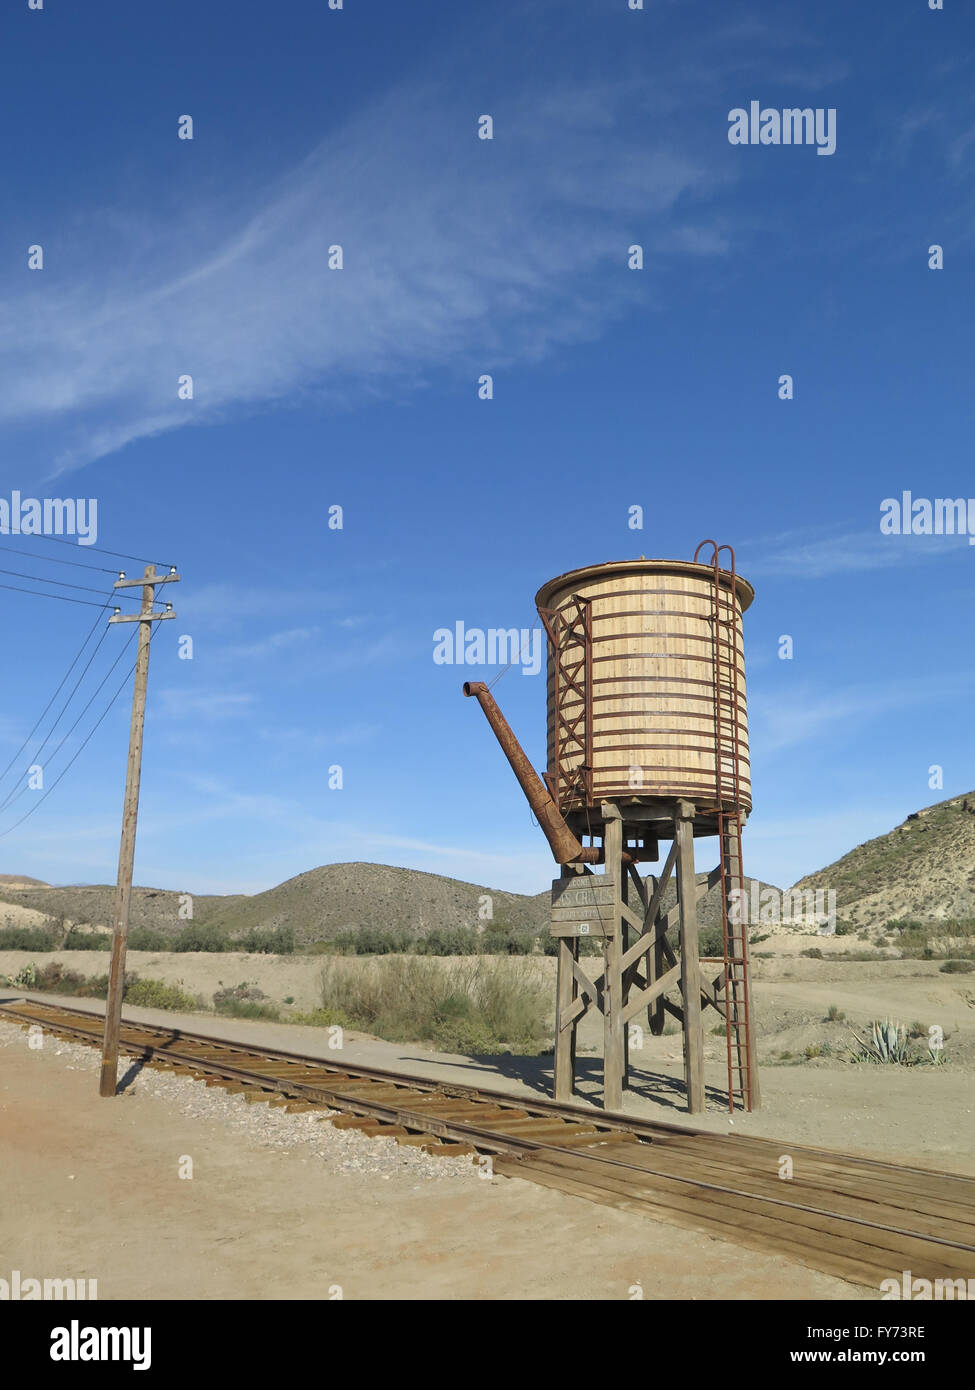 Fort Bravo, Spain - January 23rd 2016:  Wooden Railway Water Tower in Fort Bravo Film Set Tabernas Desert. - Stock Image